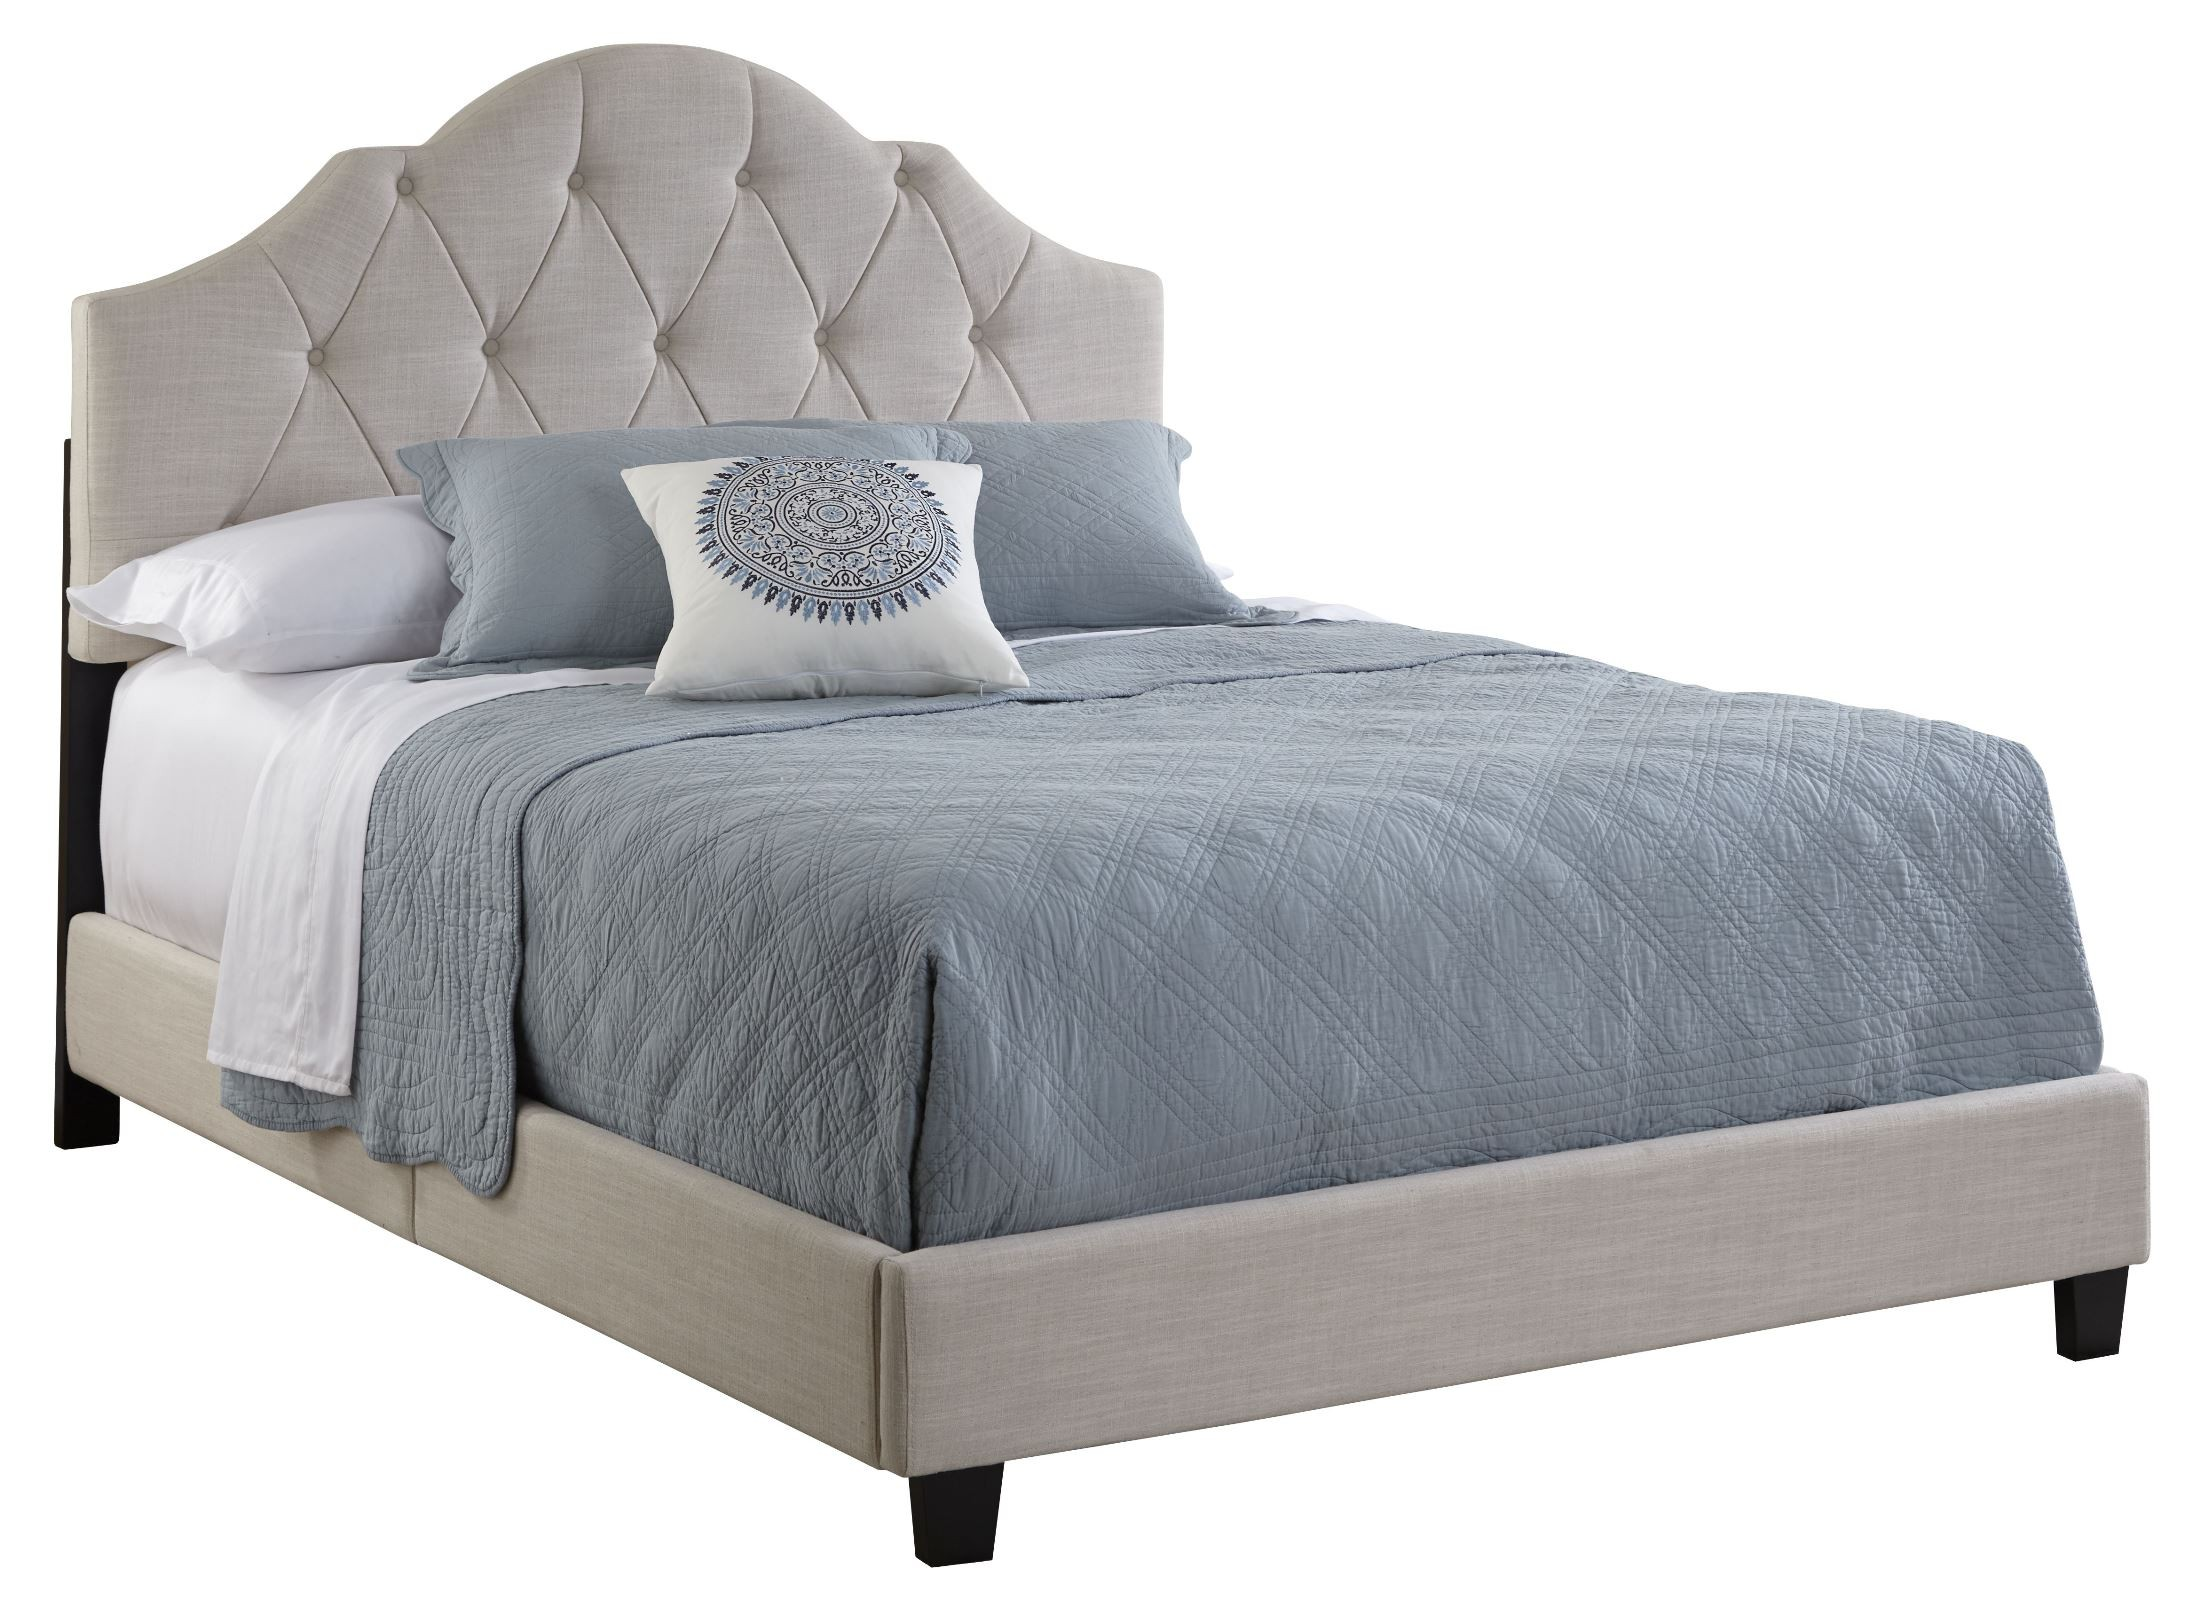 Tufted Queen Bed All N One Queen Fully Upholstered Tufted Saddle Bed From